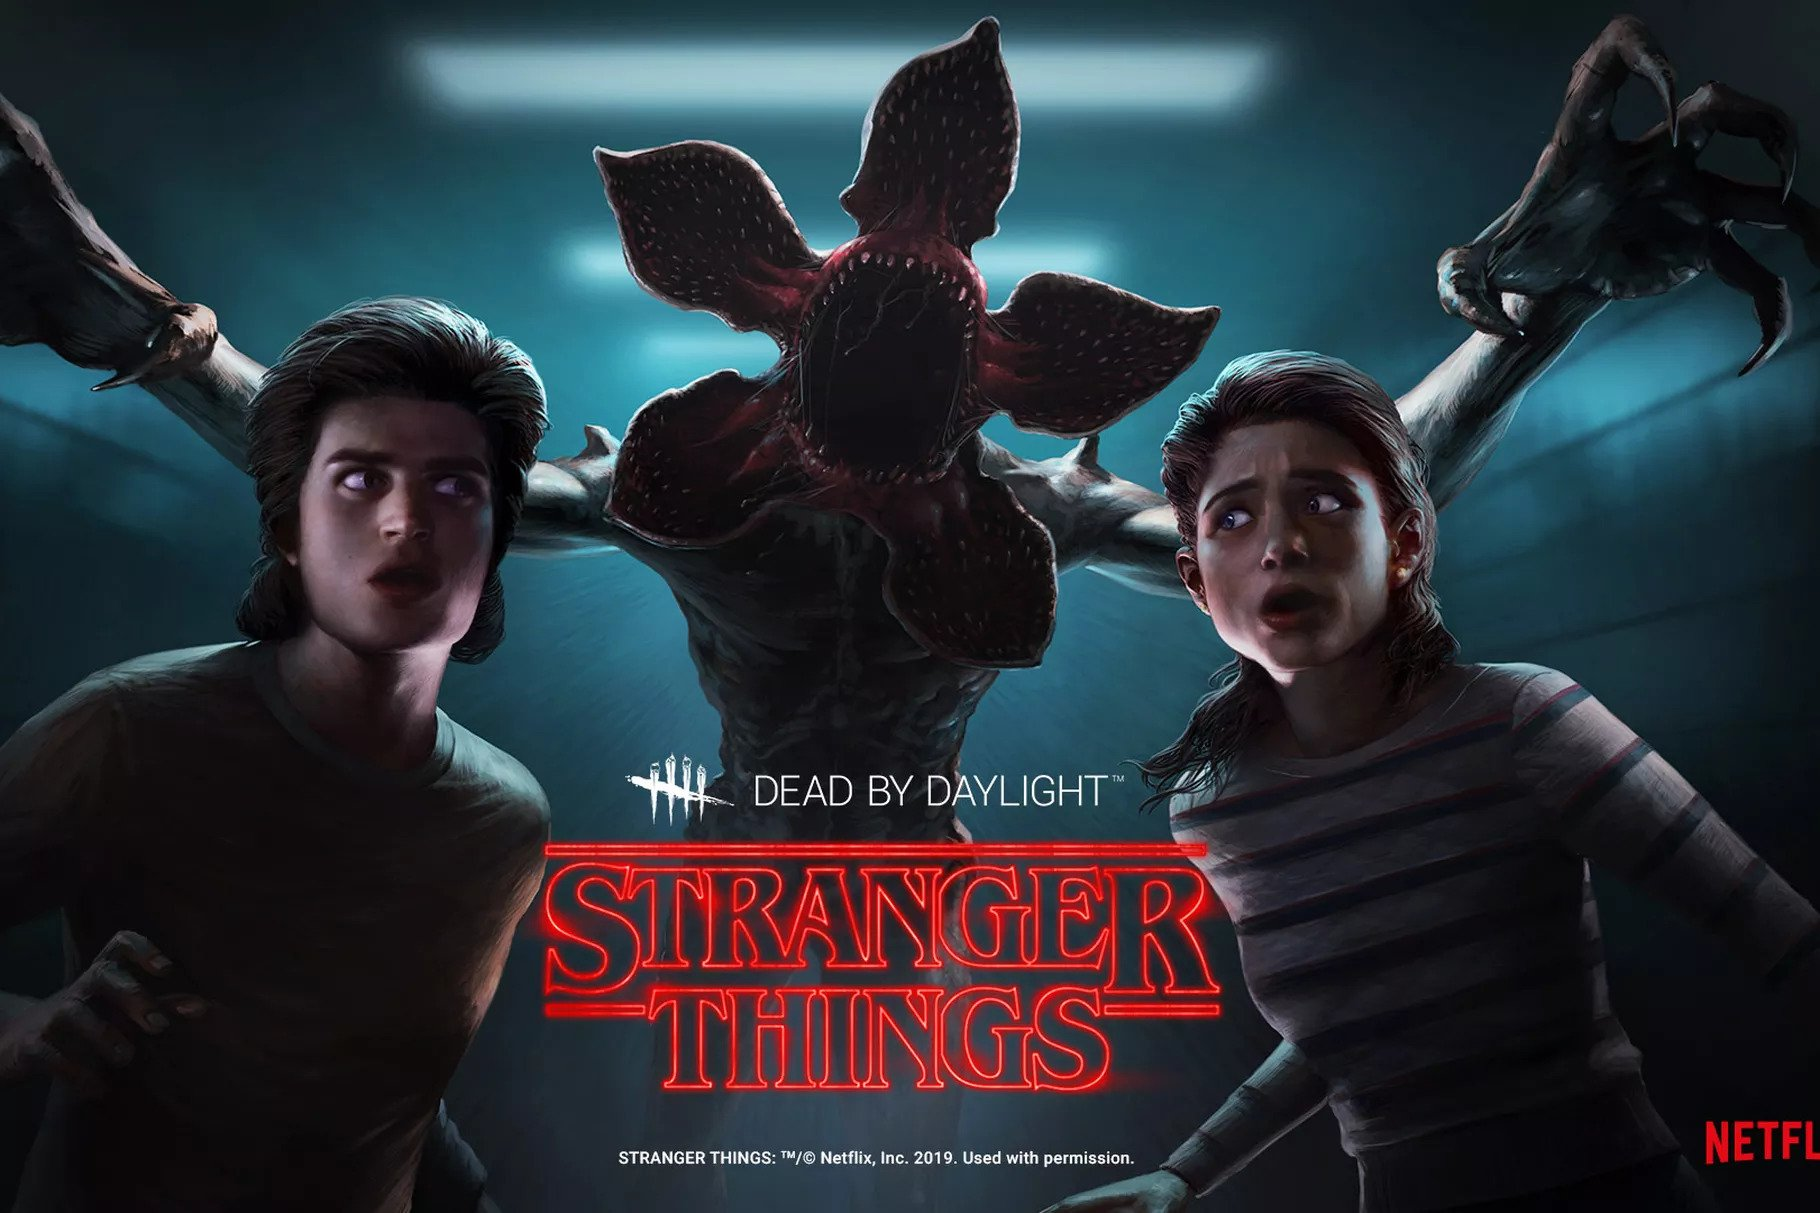 Stranger Things in Dead by Daylight